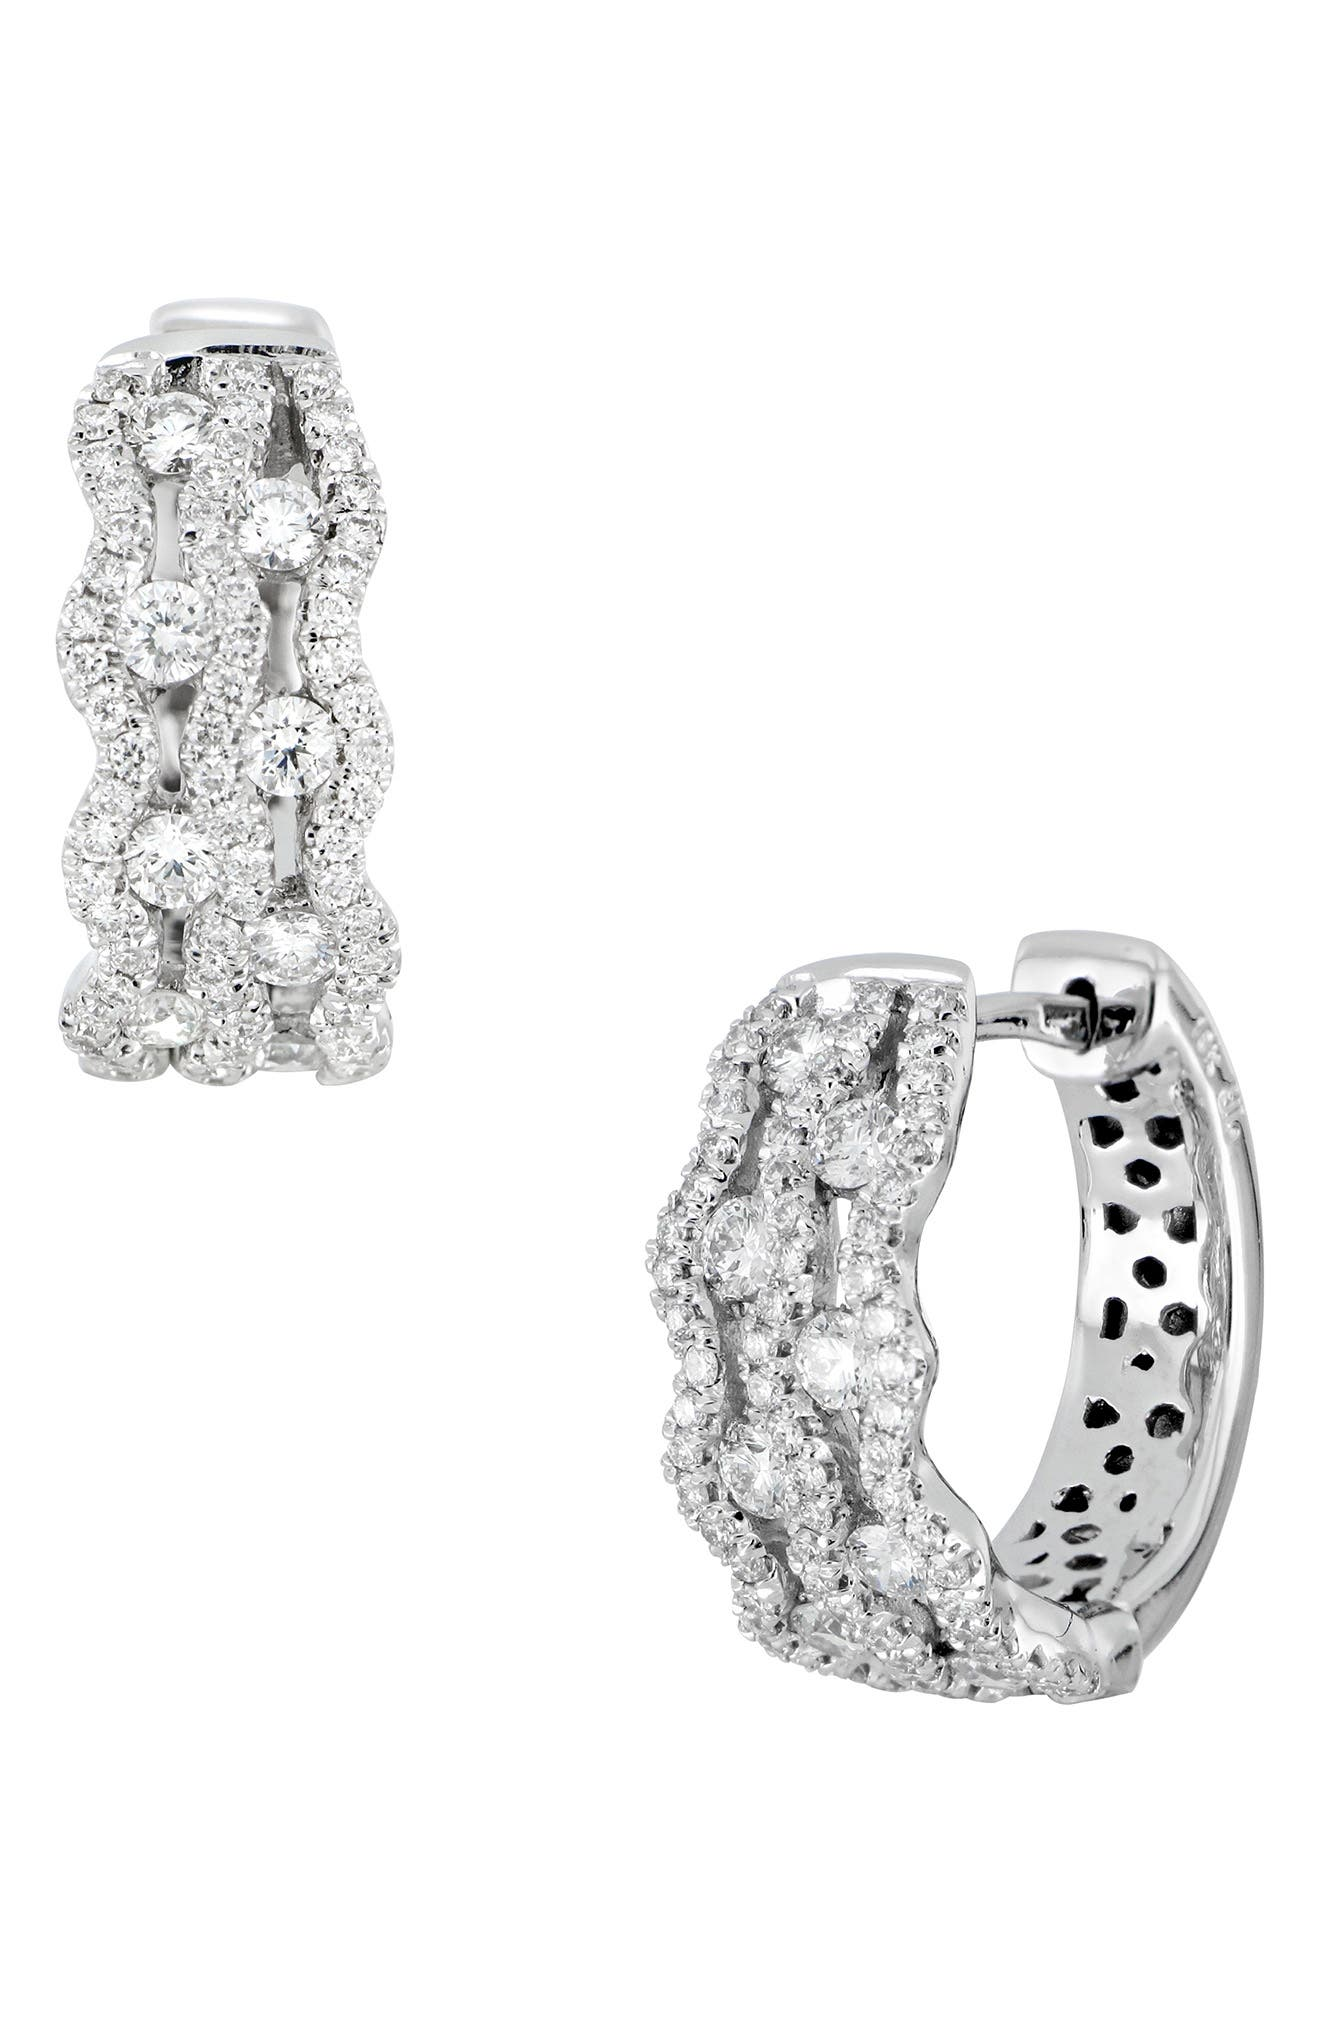 Diamond Hoop Earrings,                             Main thumbnail 1, color,                             101